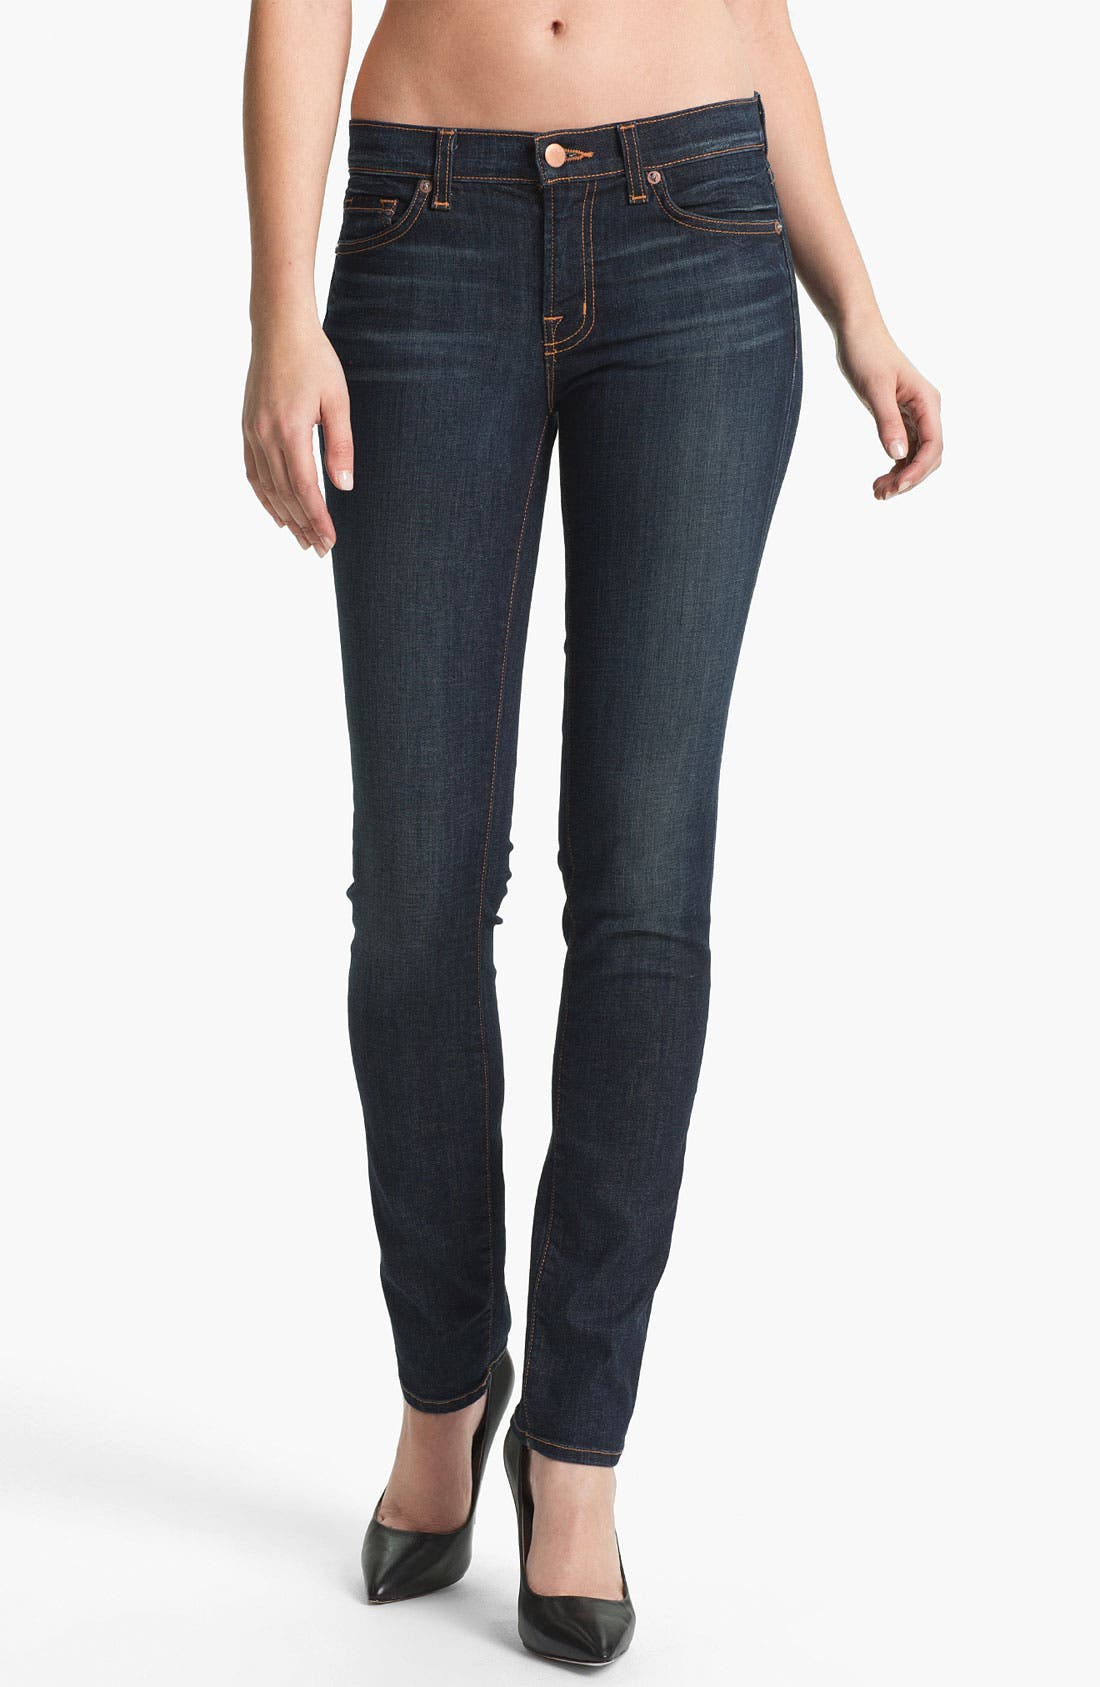 Alternate Image 1 Selected - J Brand '8112' Mid-Rise Stove Pipe Jeans (Dark Vintage)